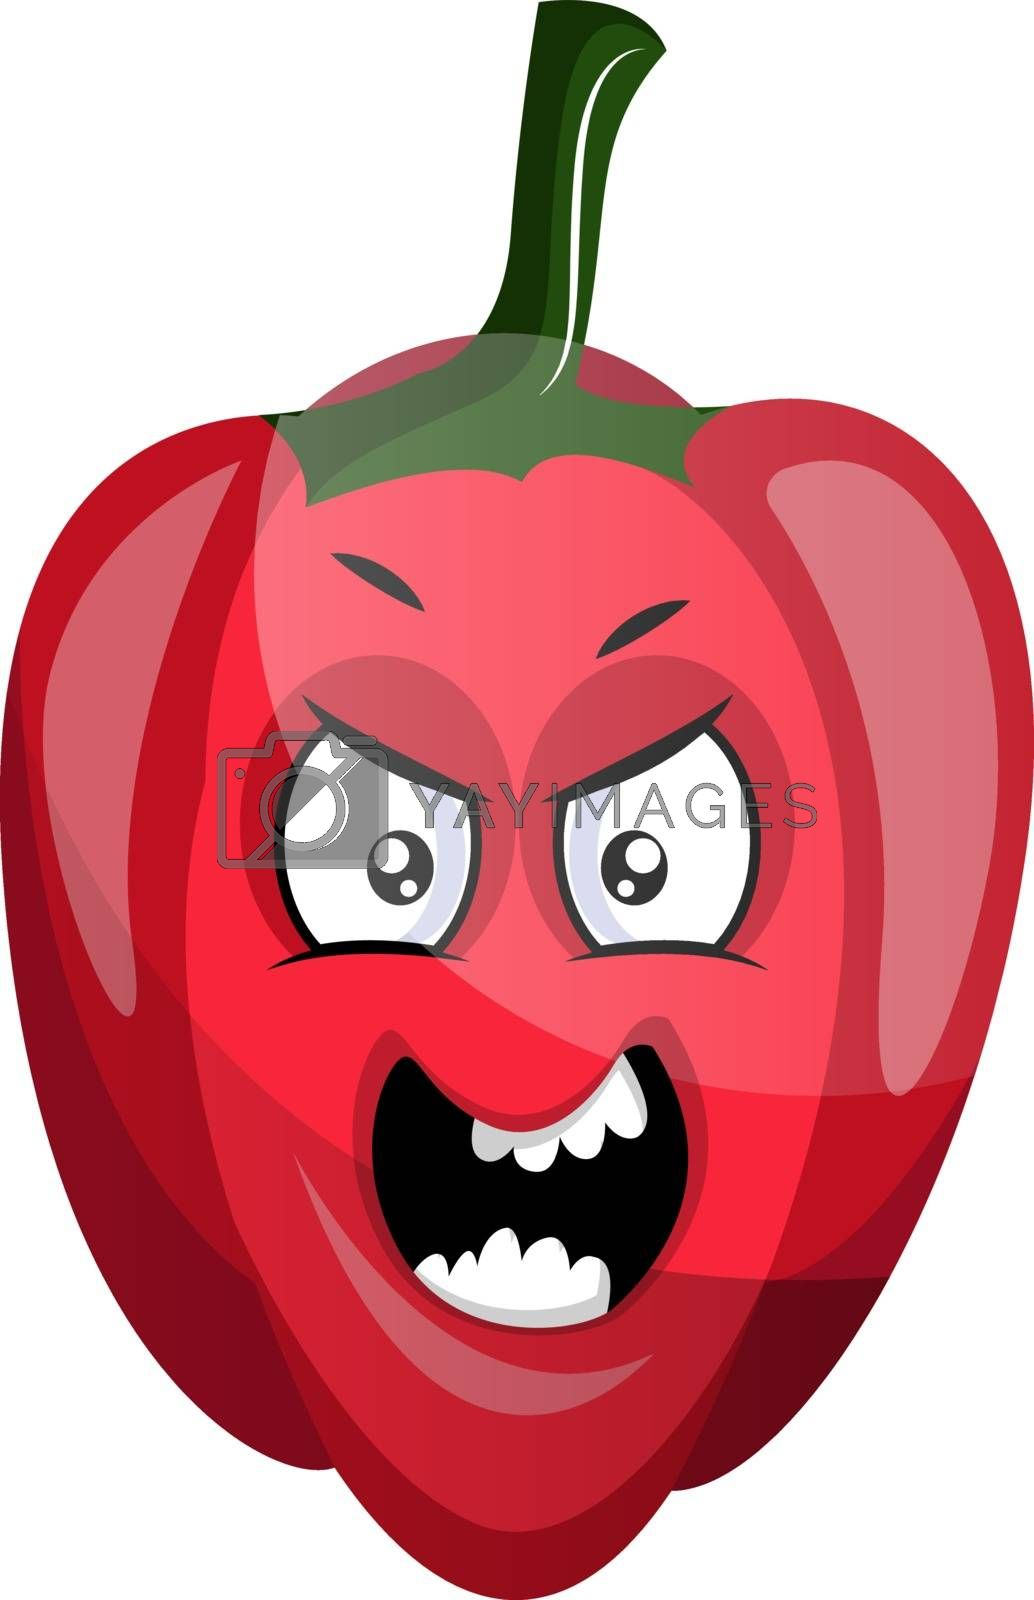 Royalty free image of Angry capsicum illustration vector on white background by Morphart